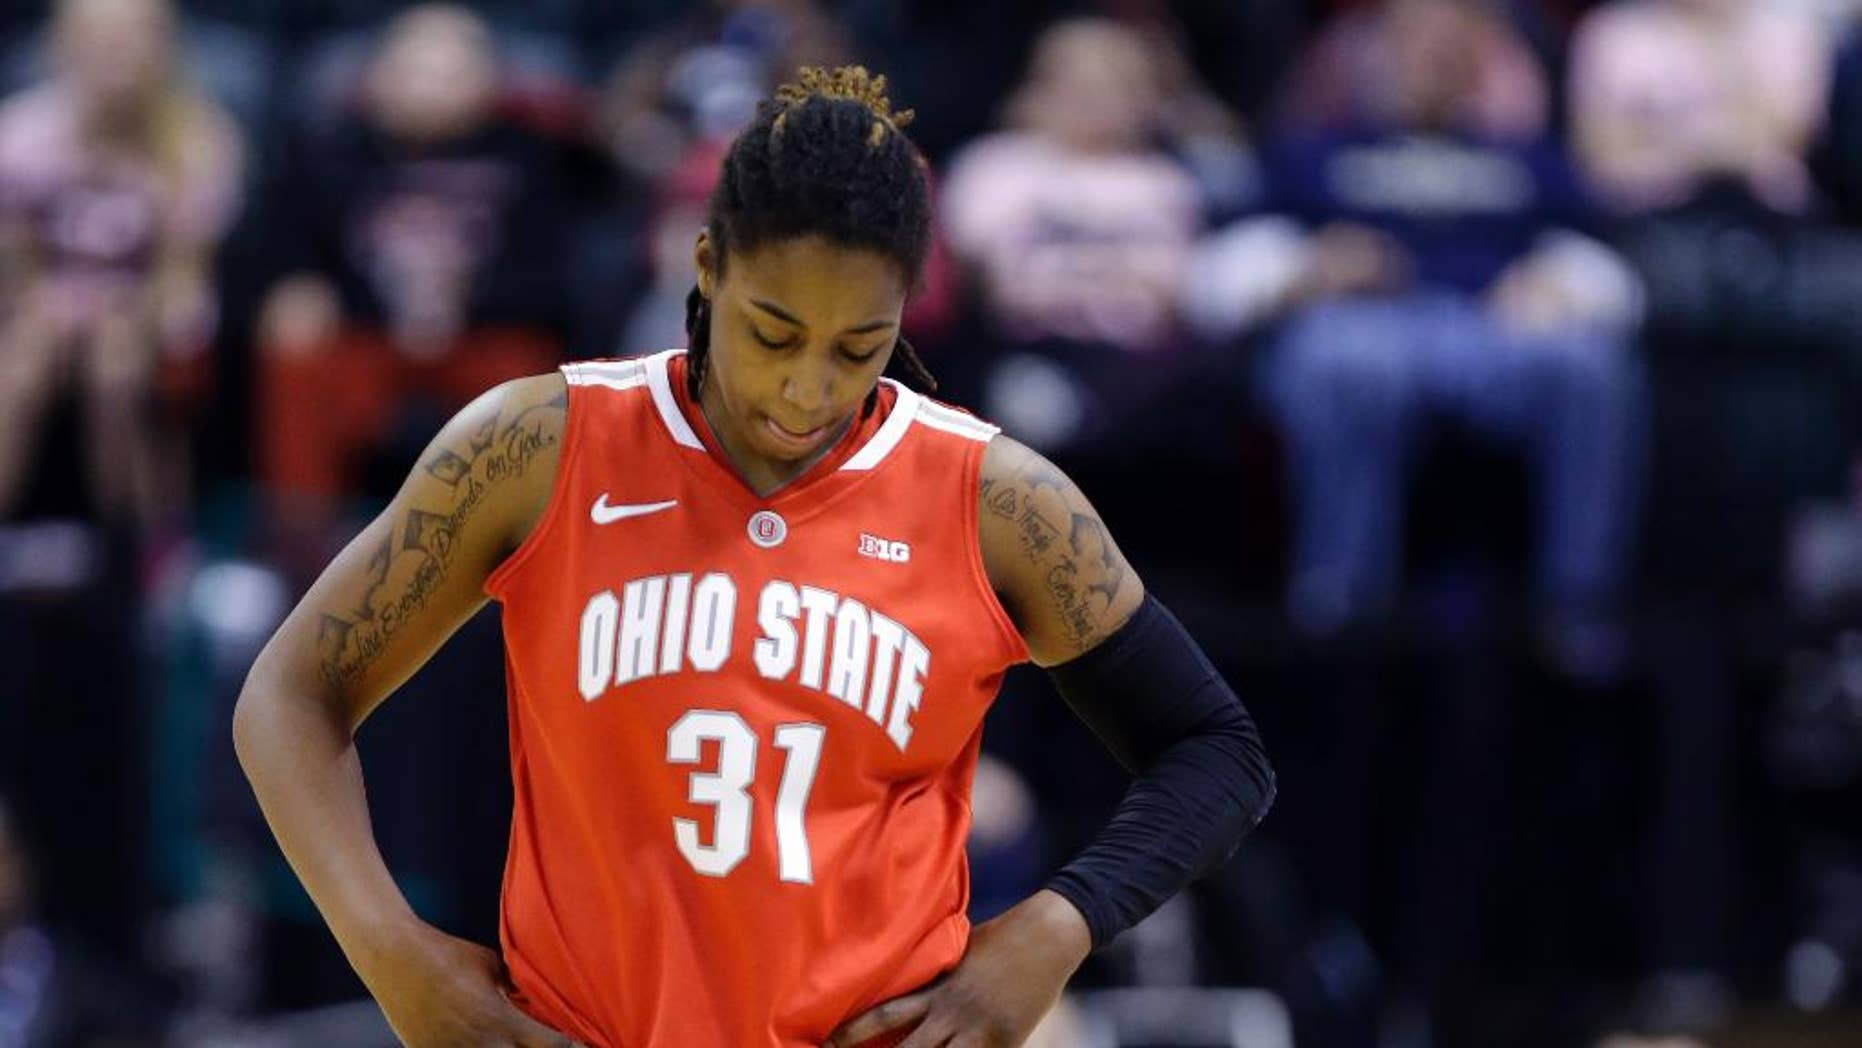 FILE - In this March 8, 2014, file photo, Ohio State guard Raven Ferguson leaves the games after fouling out in the second half of an NCAA college basketball game against the Iowa in the semifinals of the Big Ten women's tournament in Indianapolis. Second-year Ohio State coach Kevin McGuff has dismissed second-leading scorer Raven Ferguson from the team, citing a violation of team rules. McGuff said he would address the dismissal at the team's media day later on Thursday, Oct. 2, 2014. (AP Photo/Michael Conroy, File)